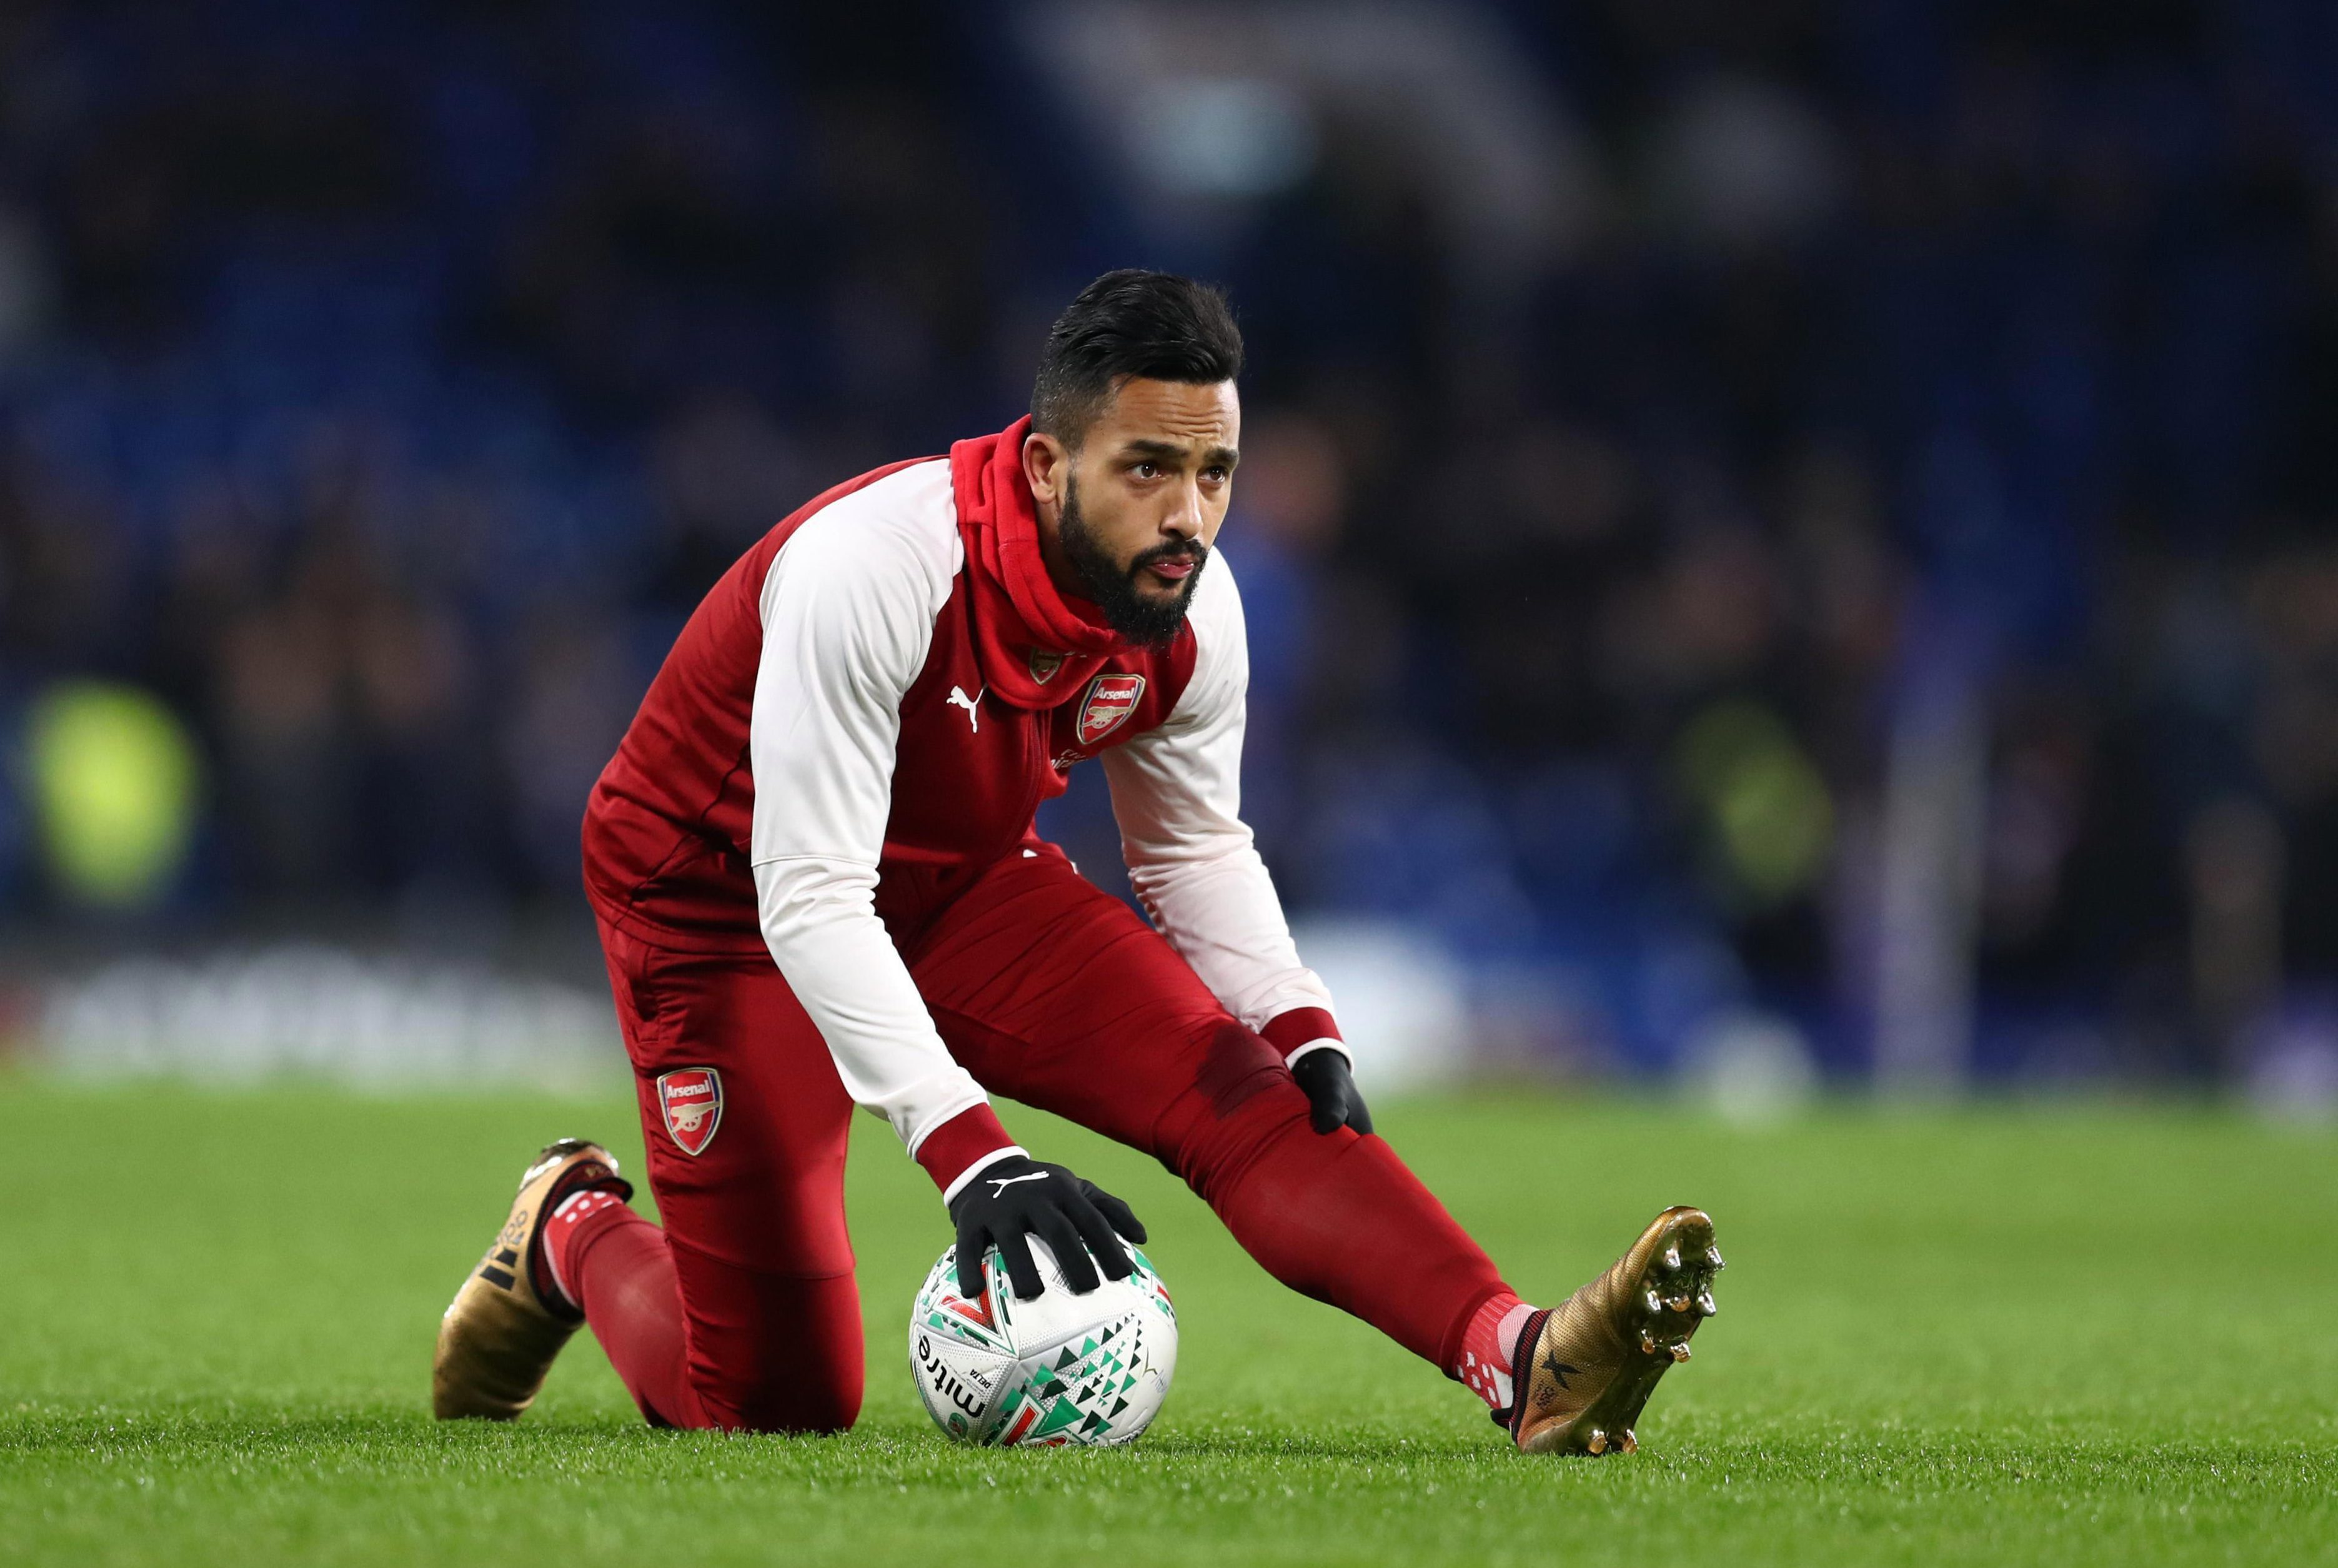 Theo Walcott set for Arsenal exit as Everton edge Southampton in the transfer race, according to the bookies